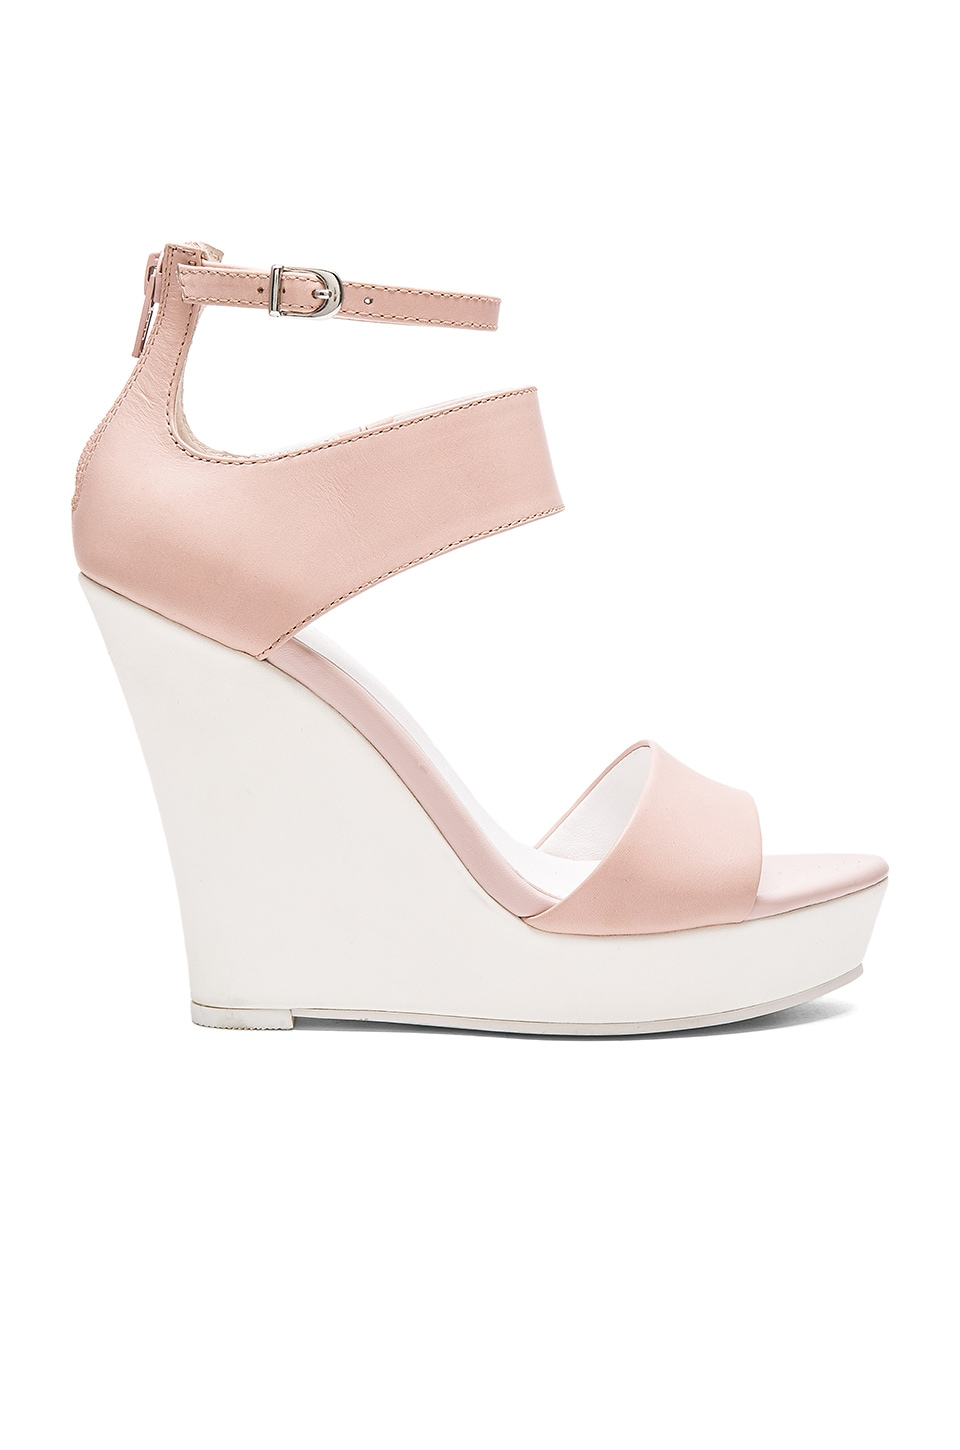 Seychelles Ramble Wedge in Pink